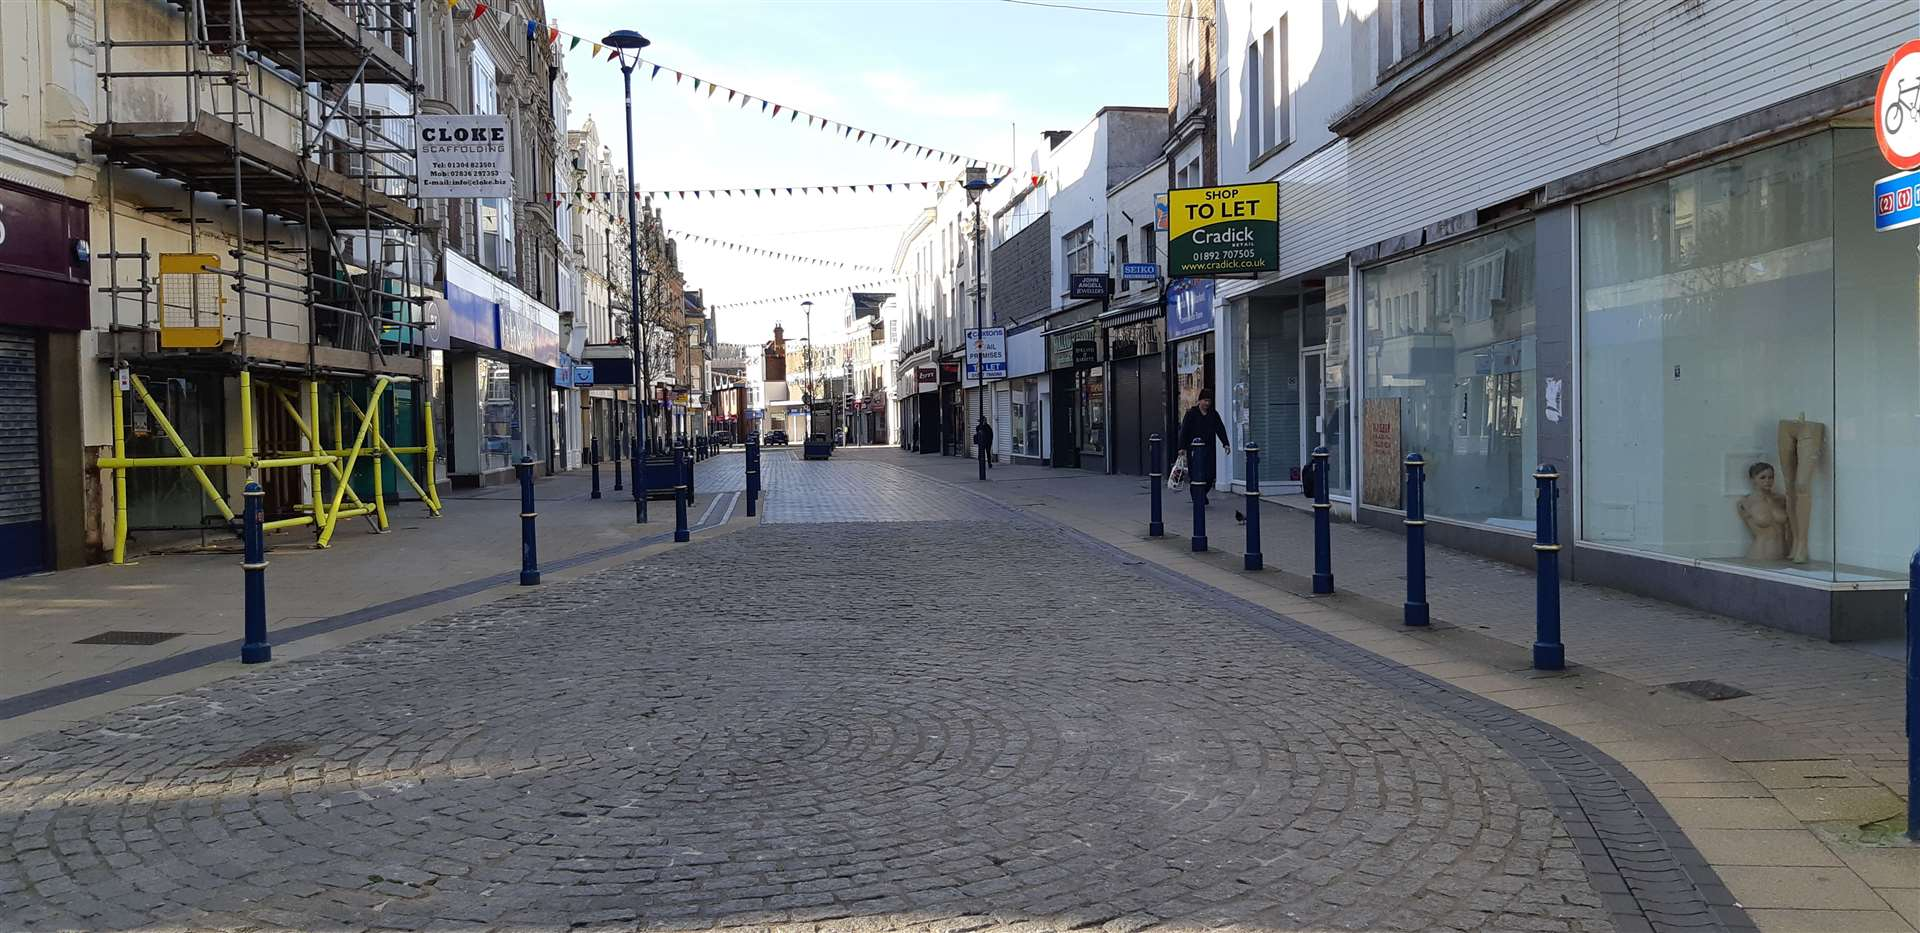 Dover's precinct at Biggin Street deserted after the first lockdown last year